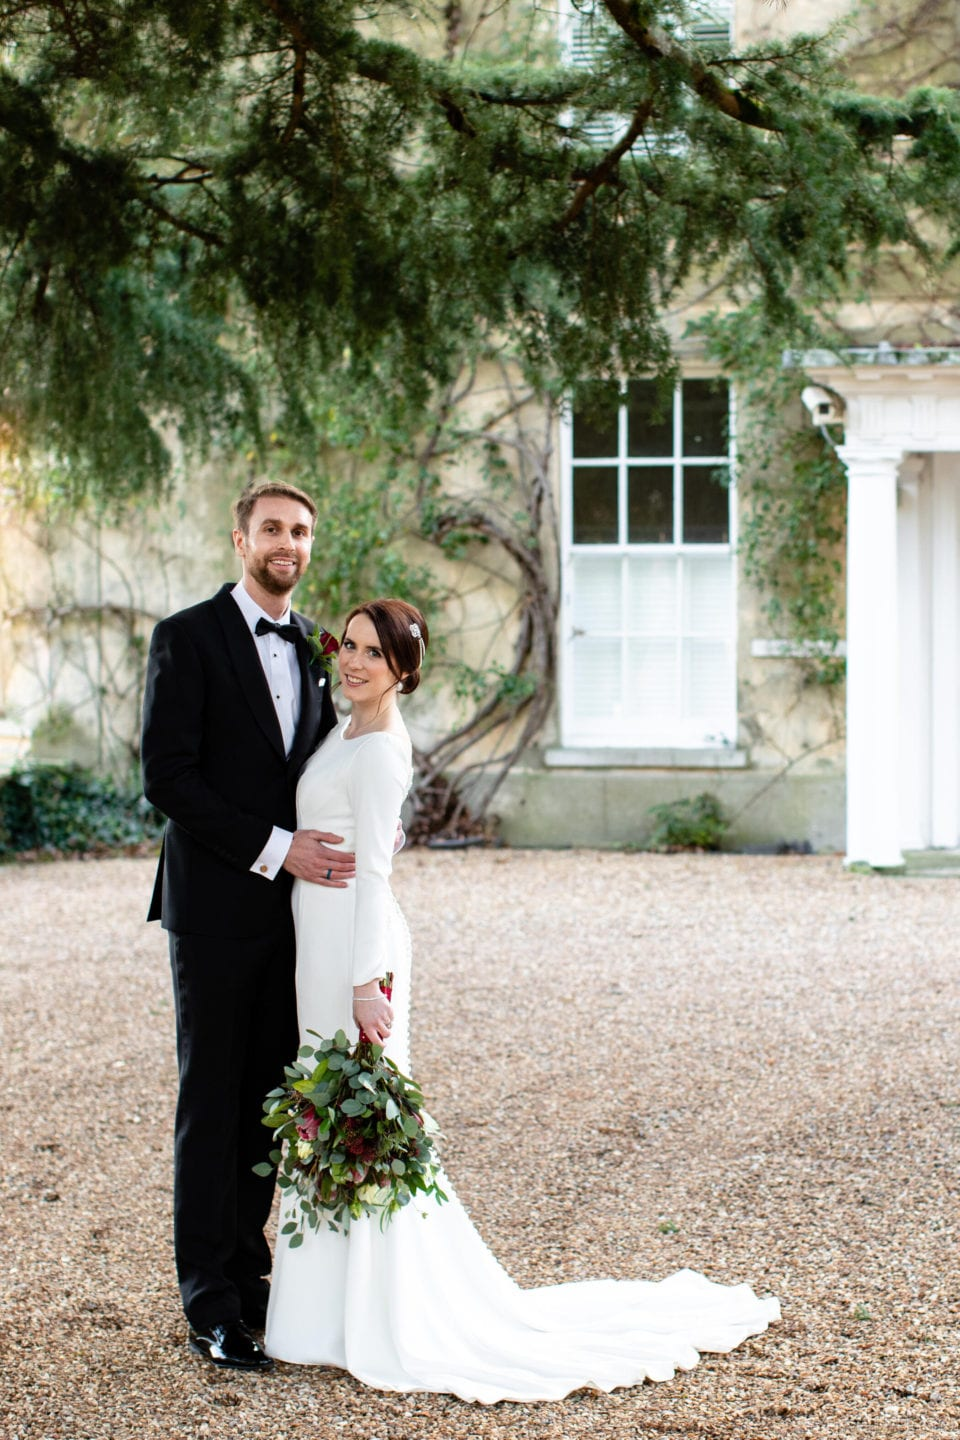 Northbrook Park Wedding Photography - Portrait of the Bride and Groom by Tony Hart